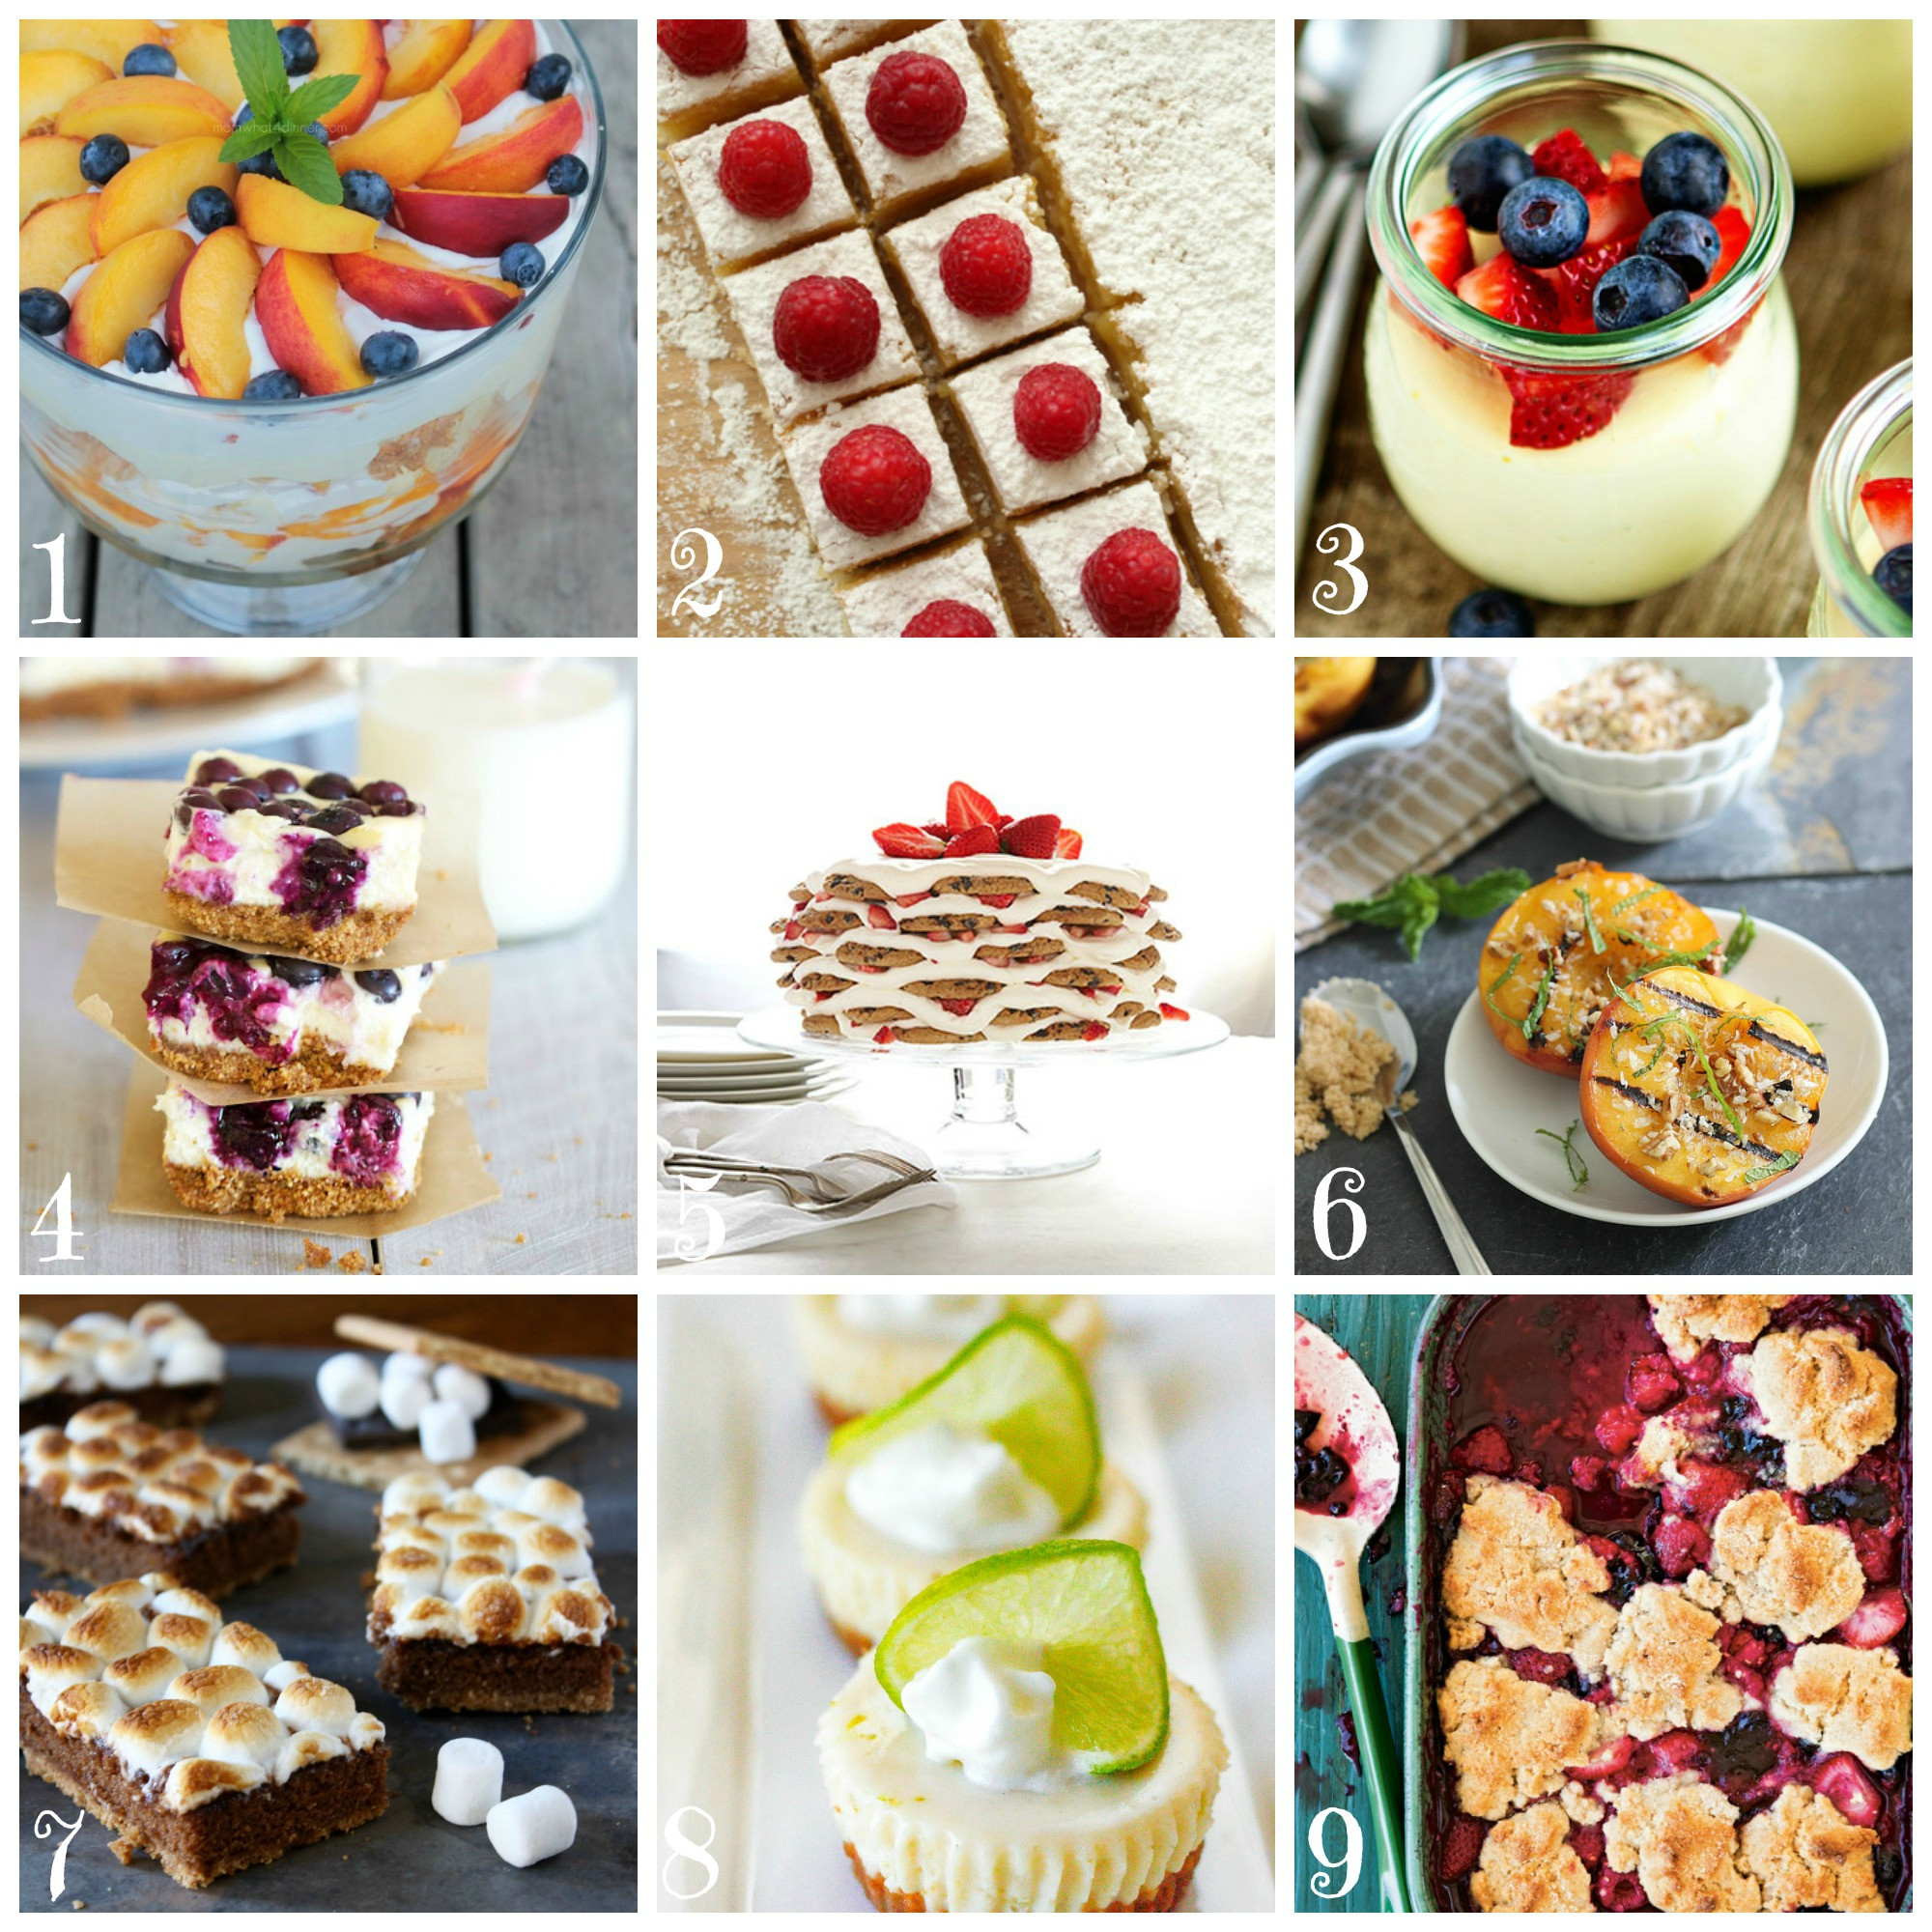 Popular Summer Desserts  Best Summer Dessert Recipes • CakeJournal